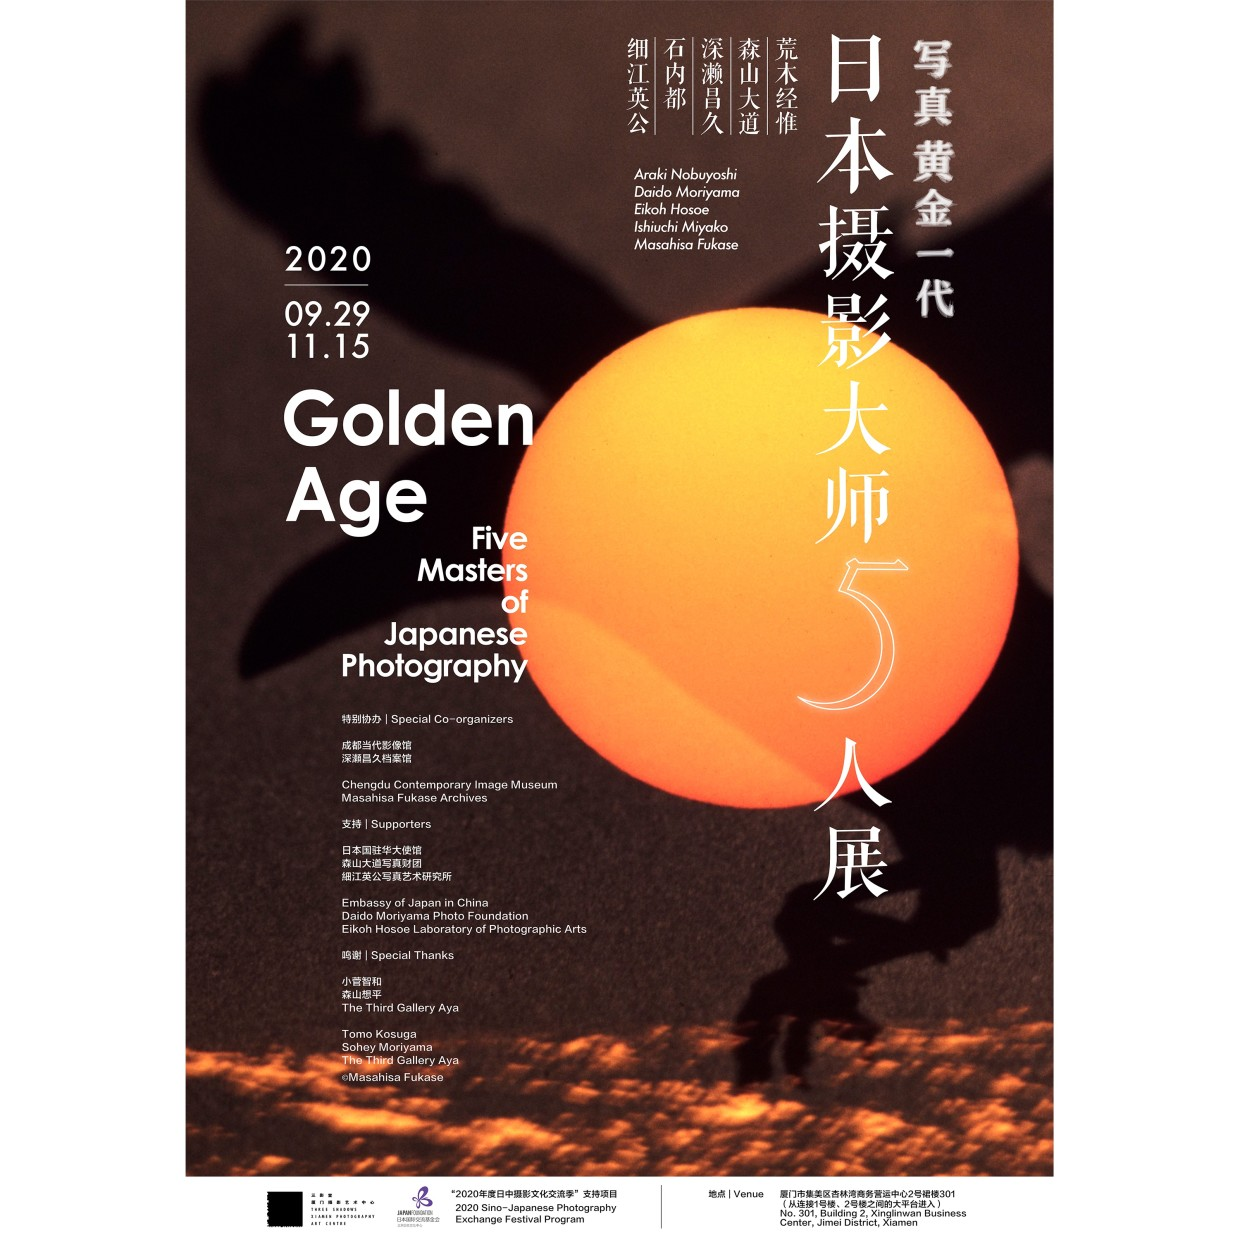 Golden Age: Five Masters of Japanese Photography (Xiamen)